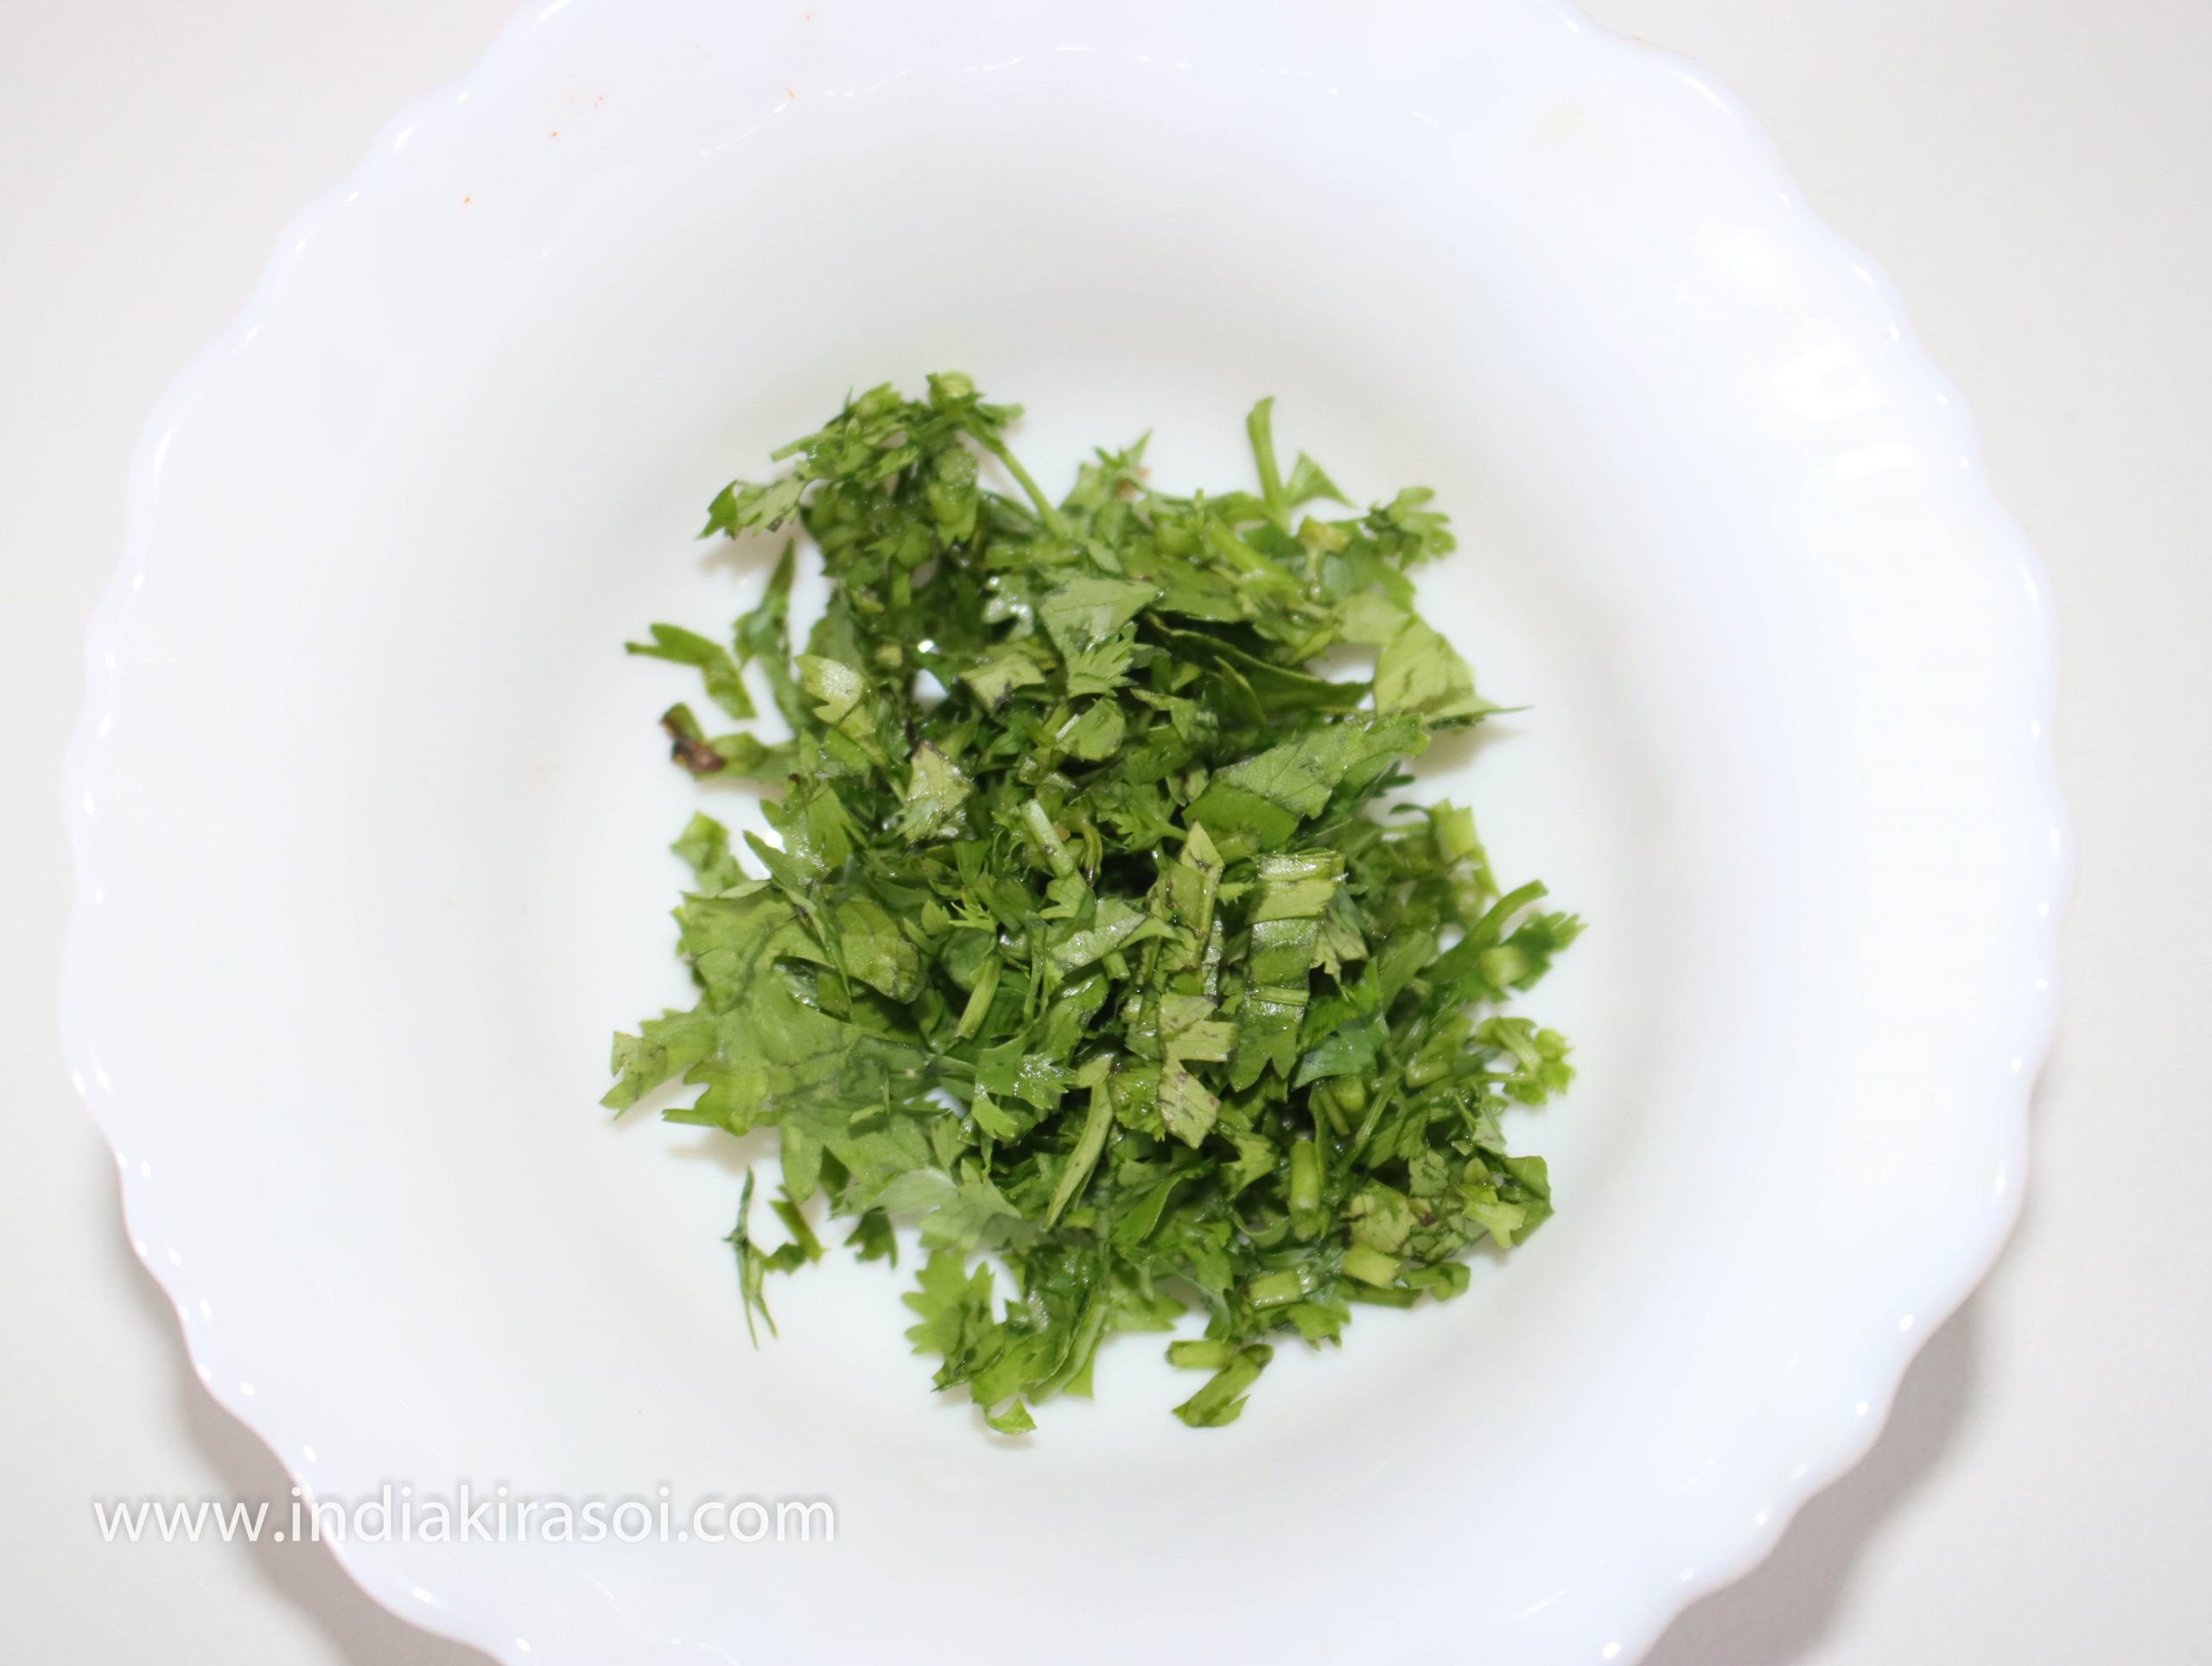 Take 2 tsp of finely chopped green coriander leaves.